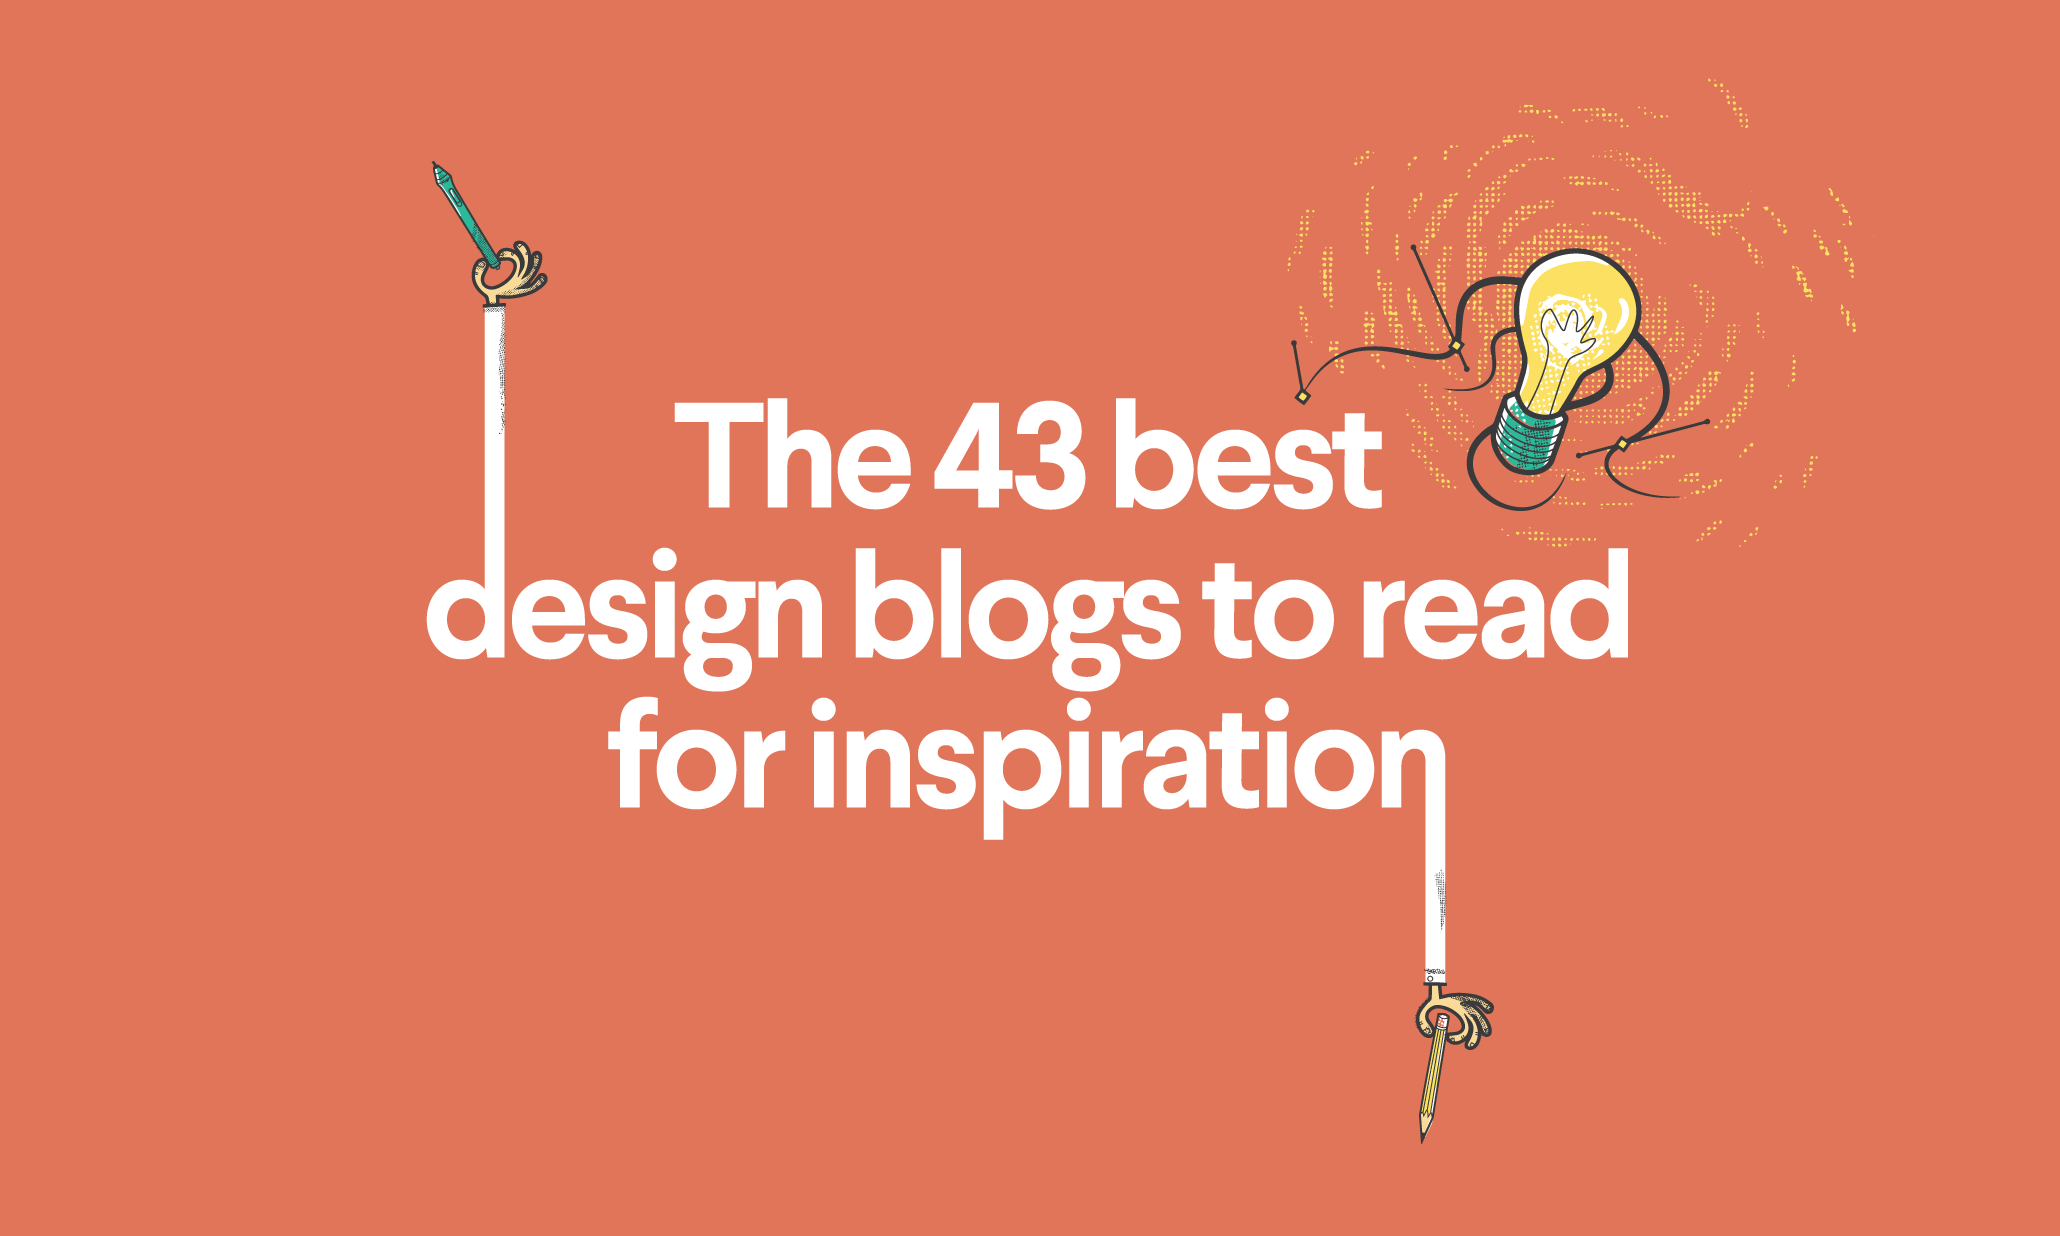 Graphic design inspiration blog  The 43 best design blogs for inspiration - 99designs Blog